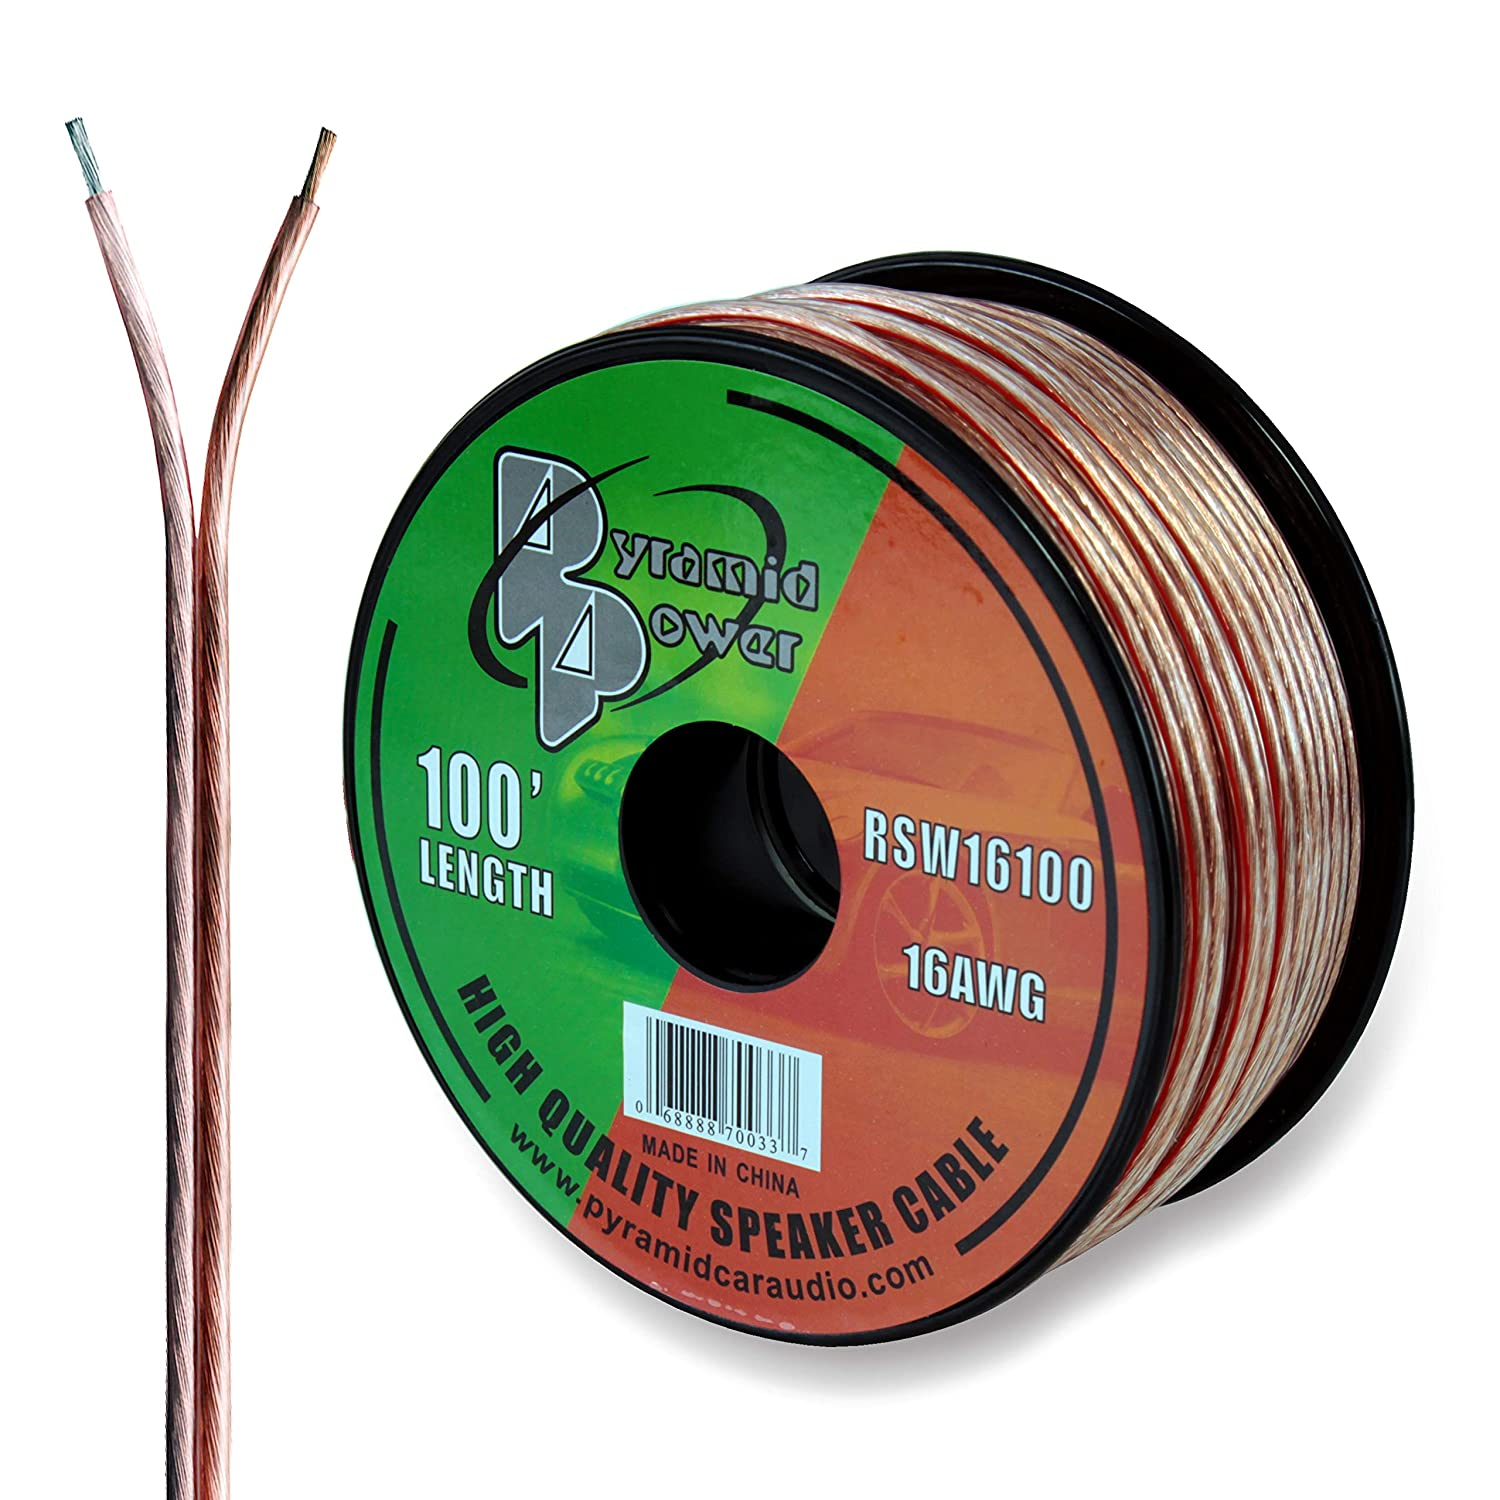 100ft 18 Gauge Speaker Wire Copper Cable In Spool For China Electric Single Core Ground Bv Photos Connecting Audio Stereo To Amplifier Surround Sound System Tv Home Theater And Car